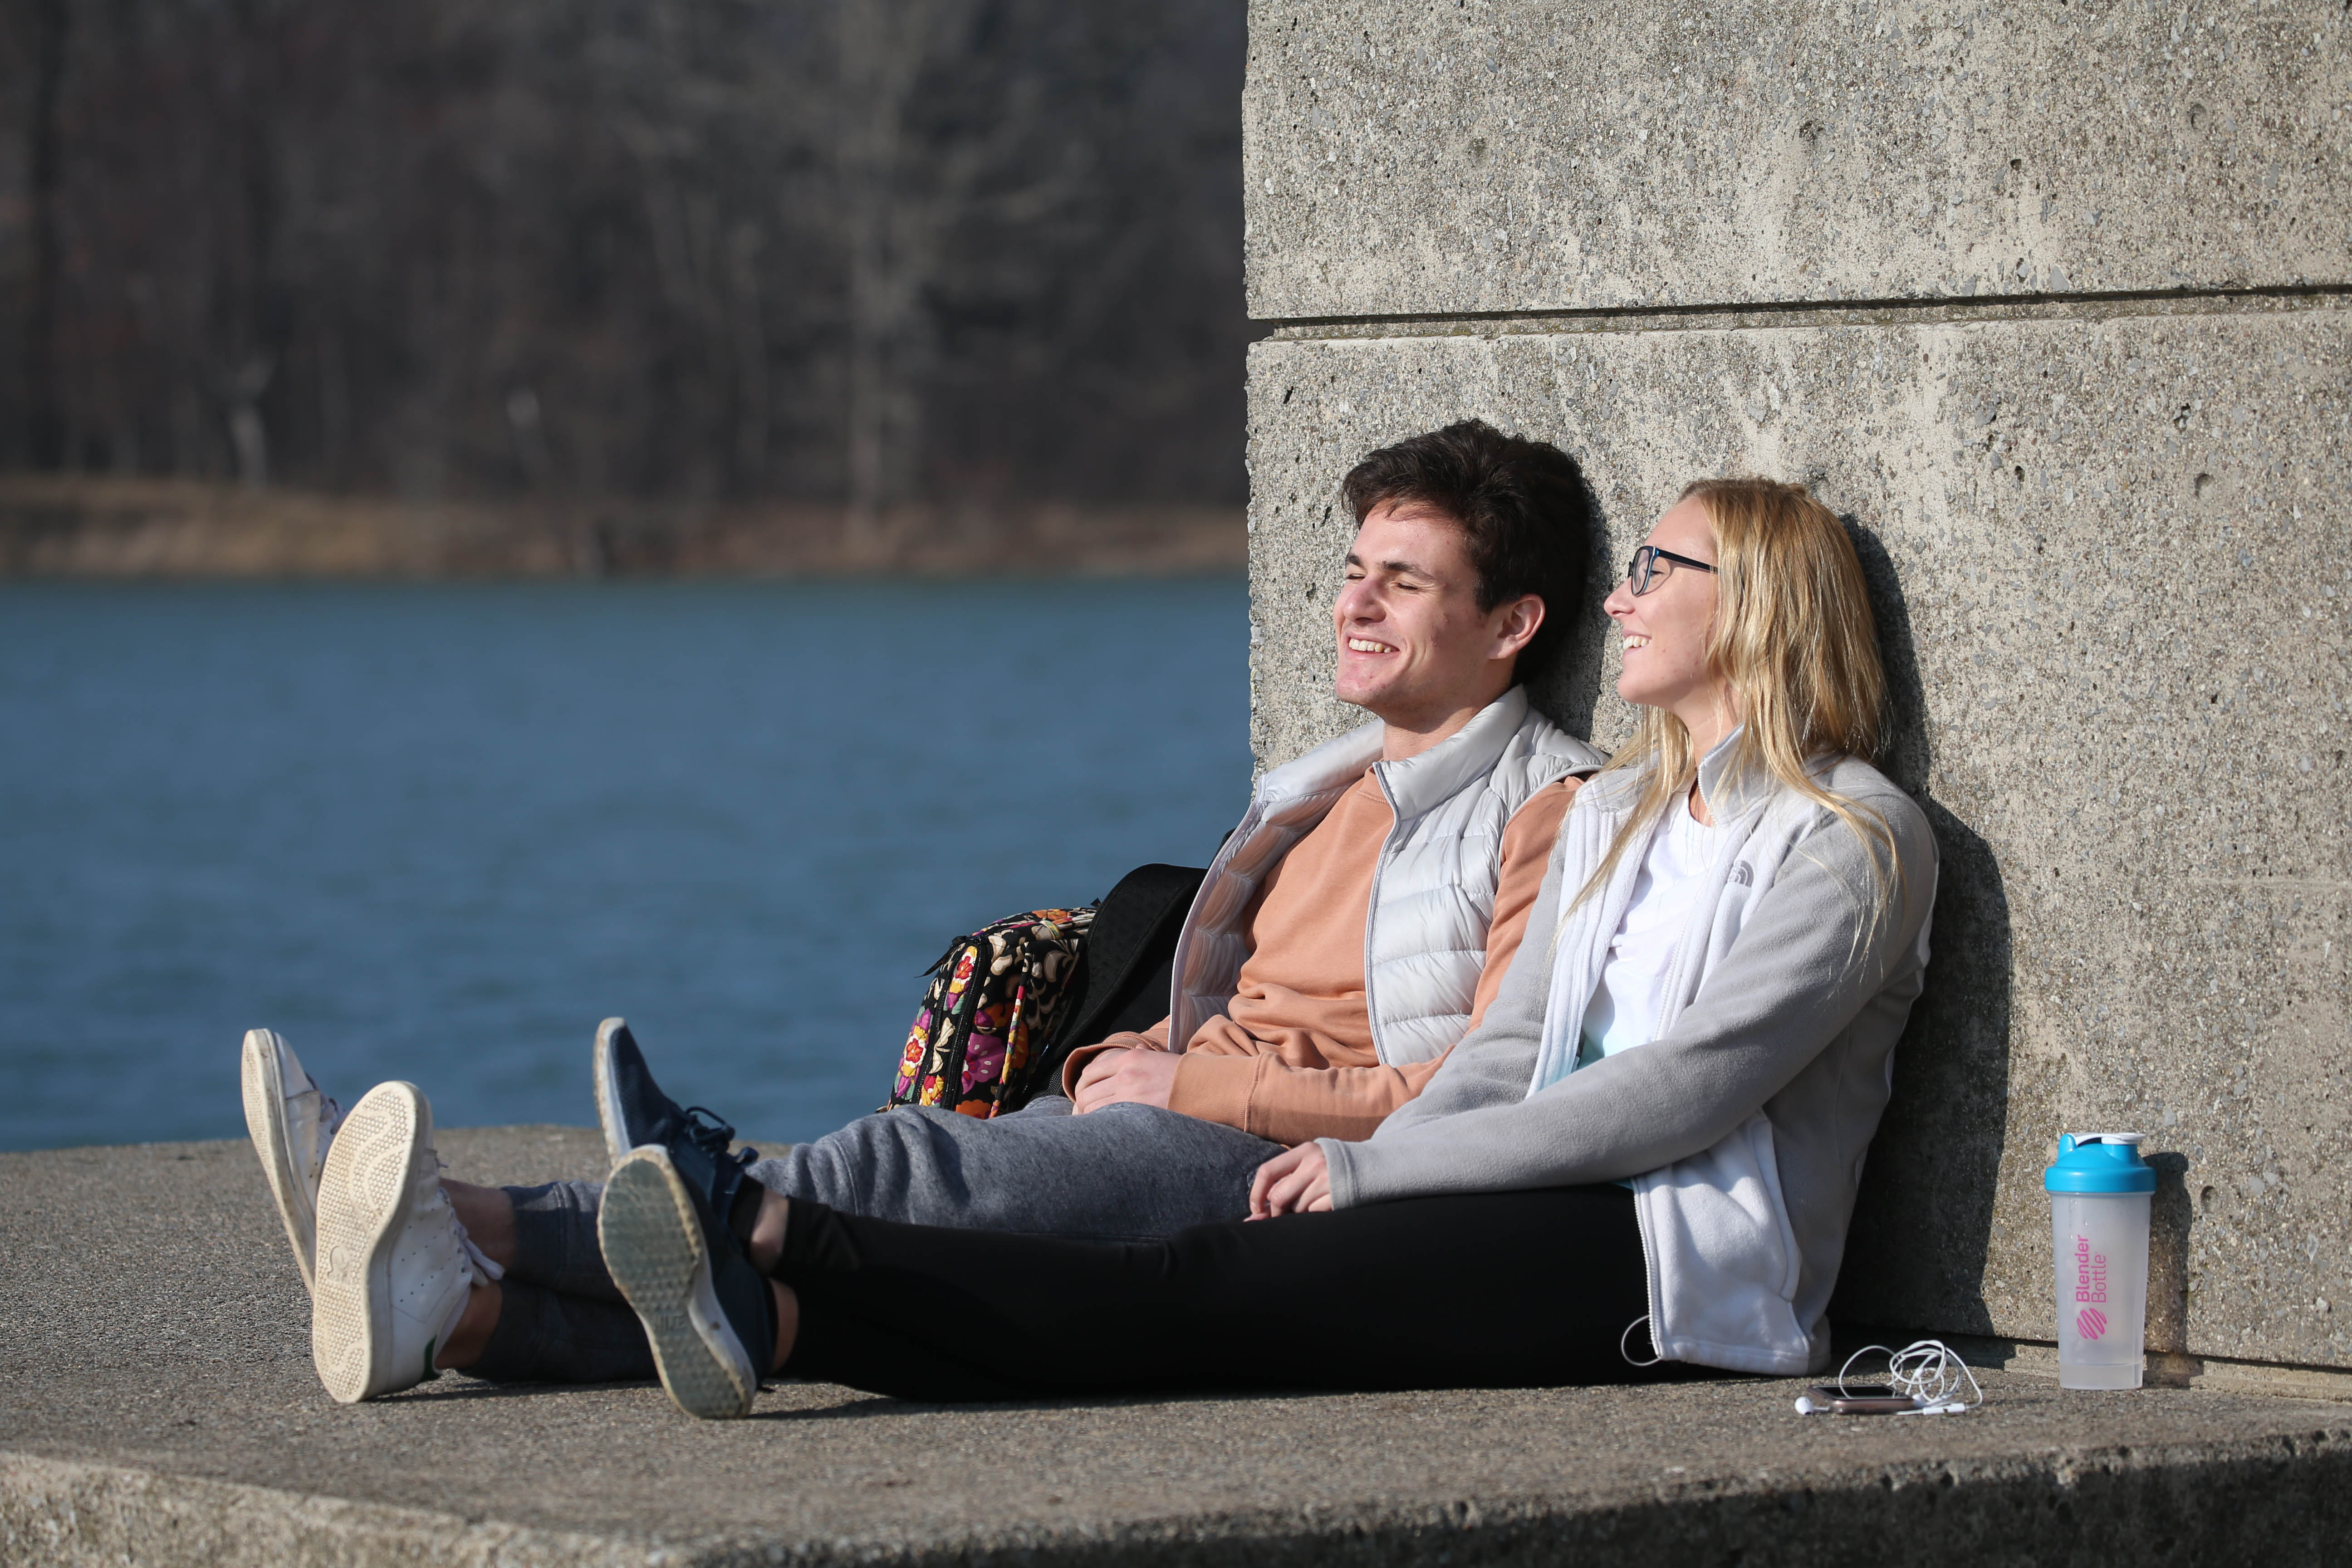 With unusually warm temperatures, people were getting outside and soaking in the sun and warmth on Thursday, Feb. 23, 2017. (Sharon Cantillon/Buffalo News)